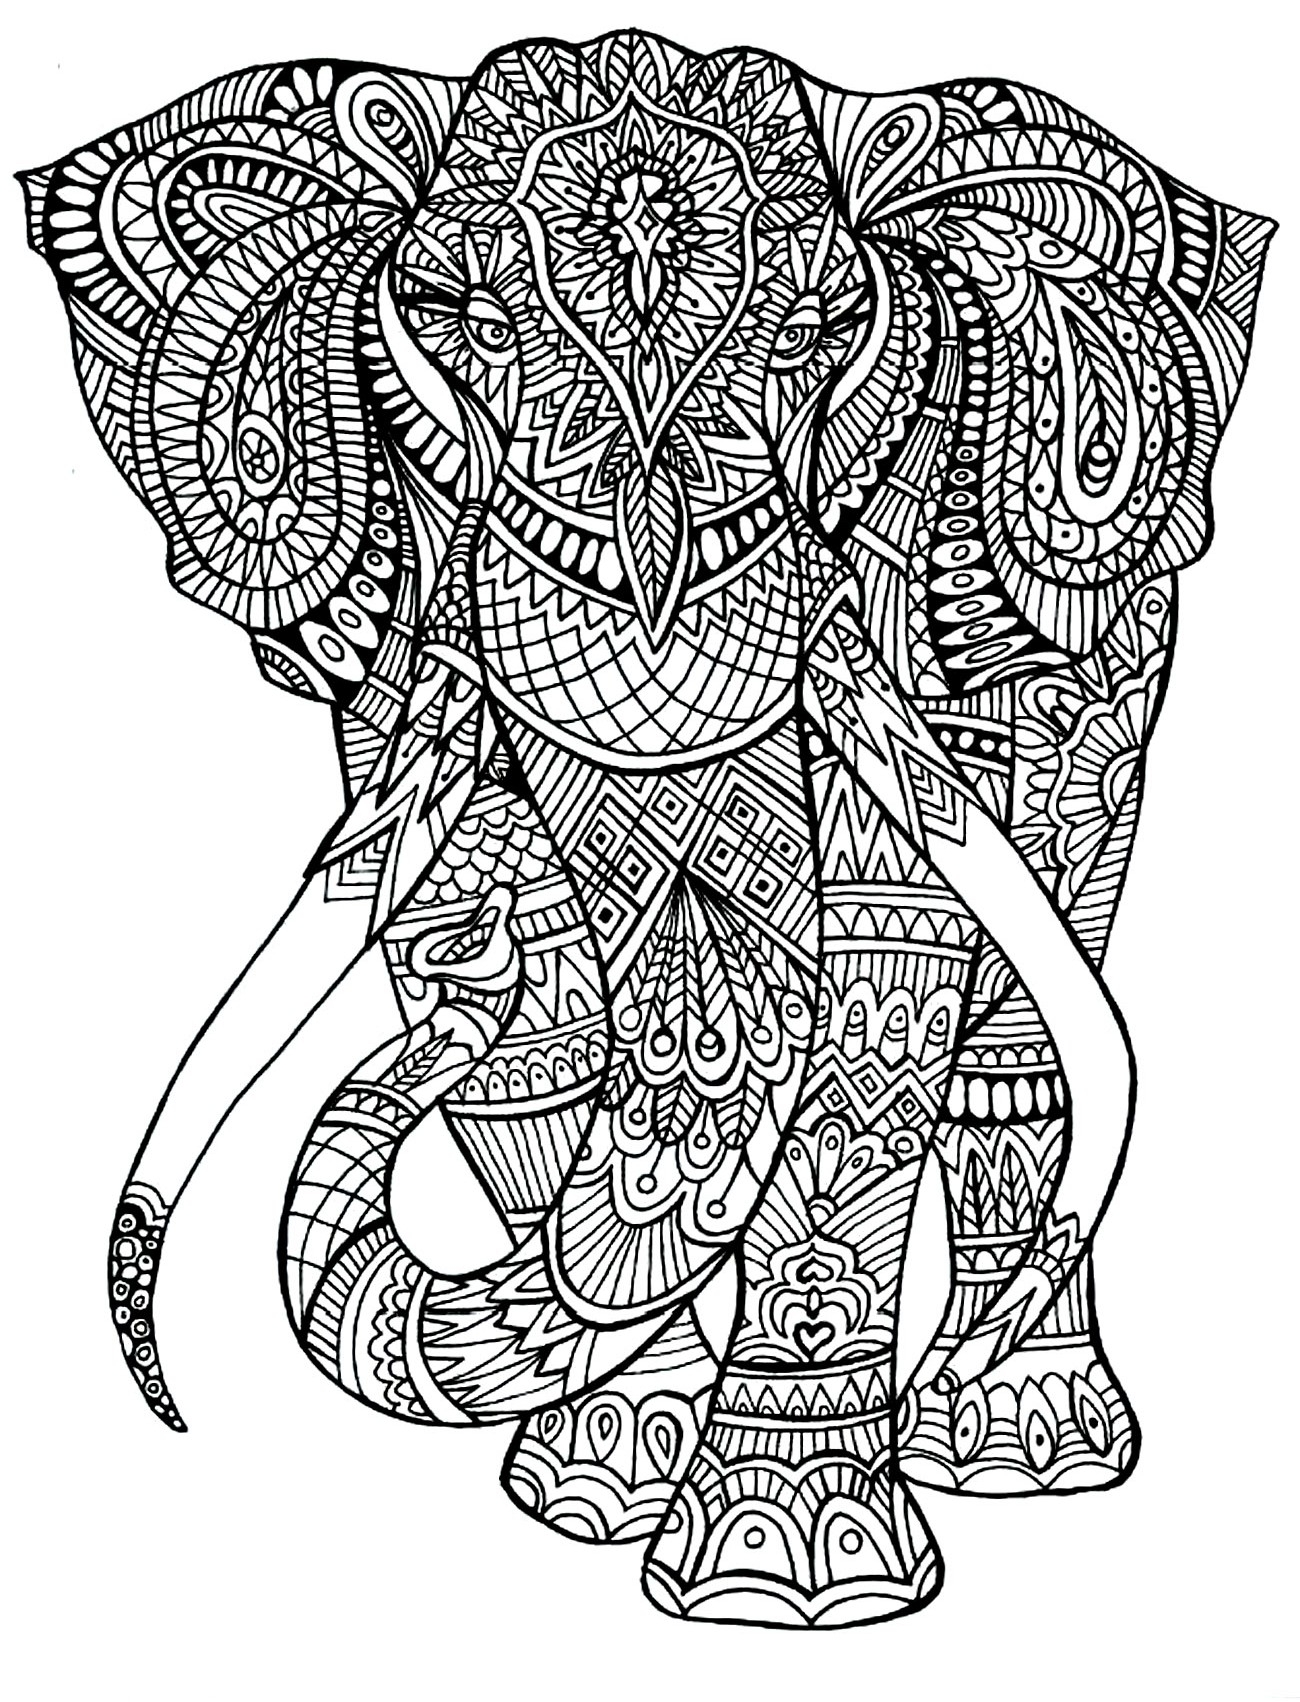 downloadable adult coloring pages - everything you need to know about adult coloring